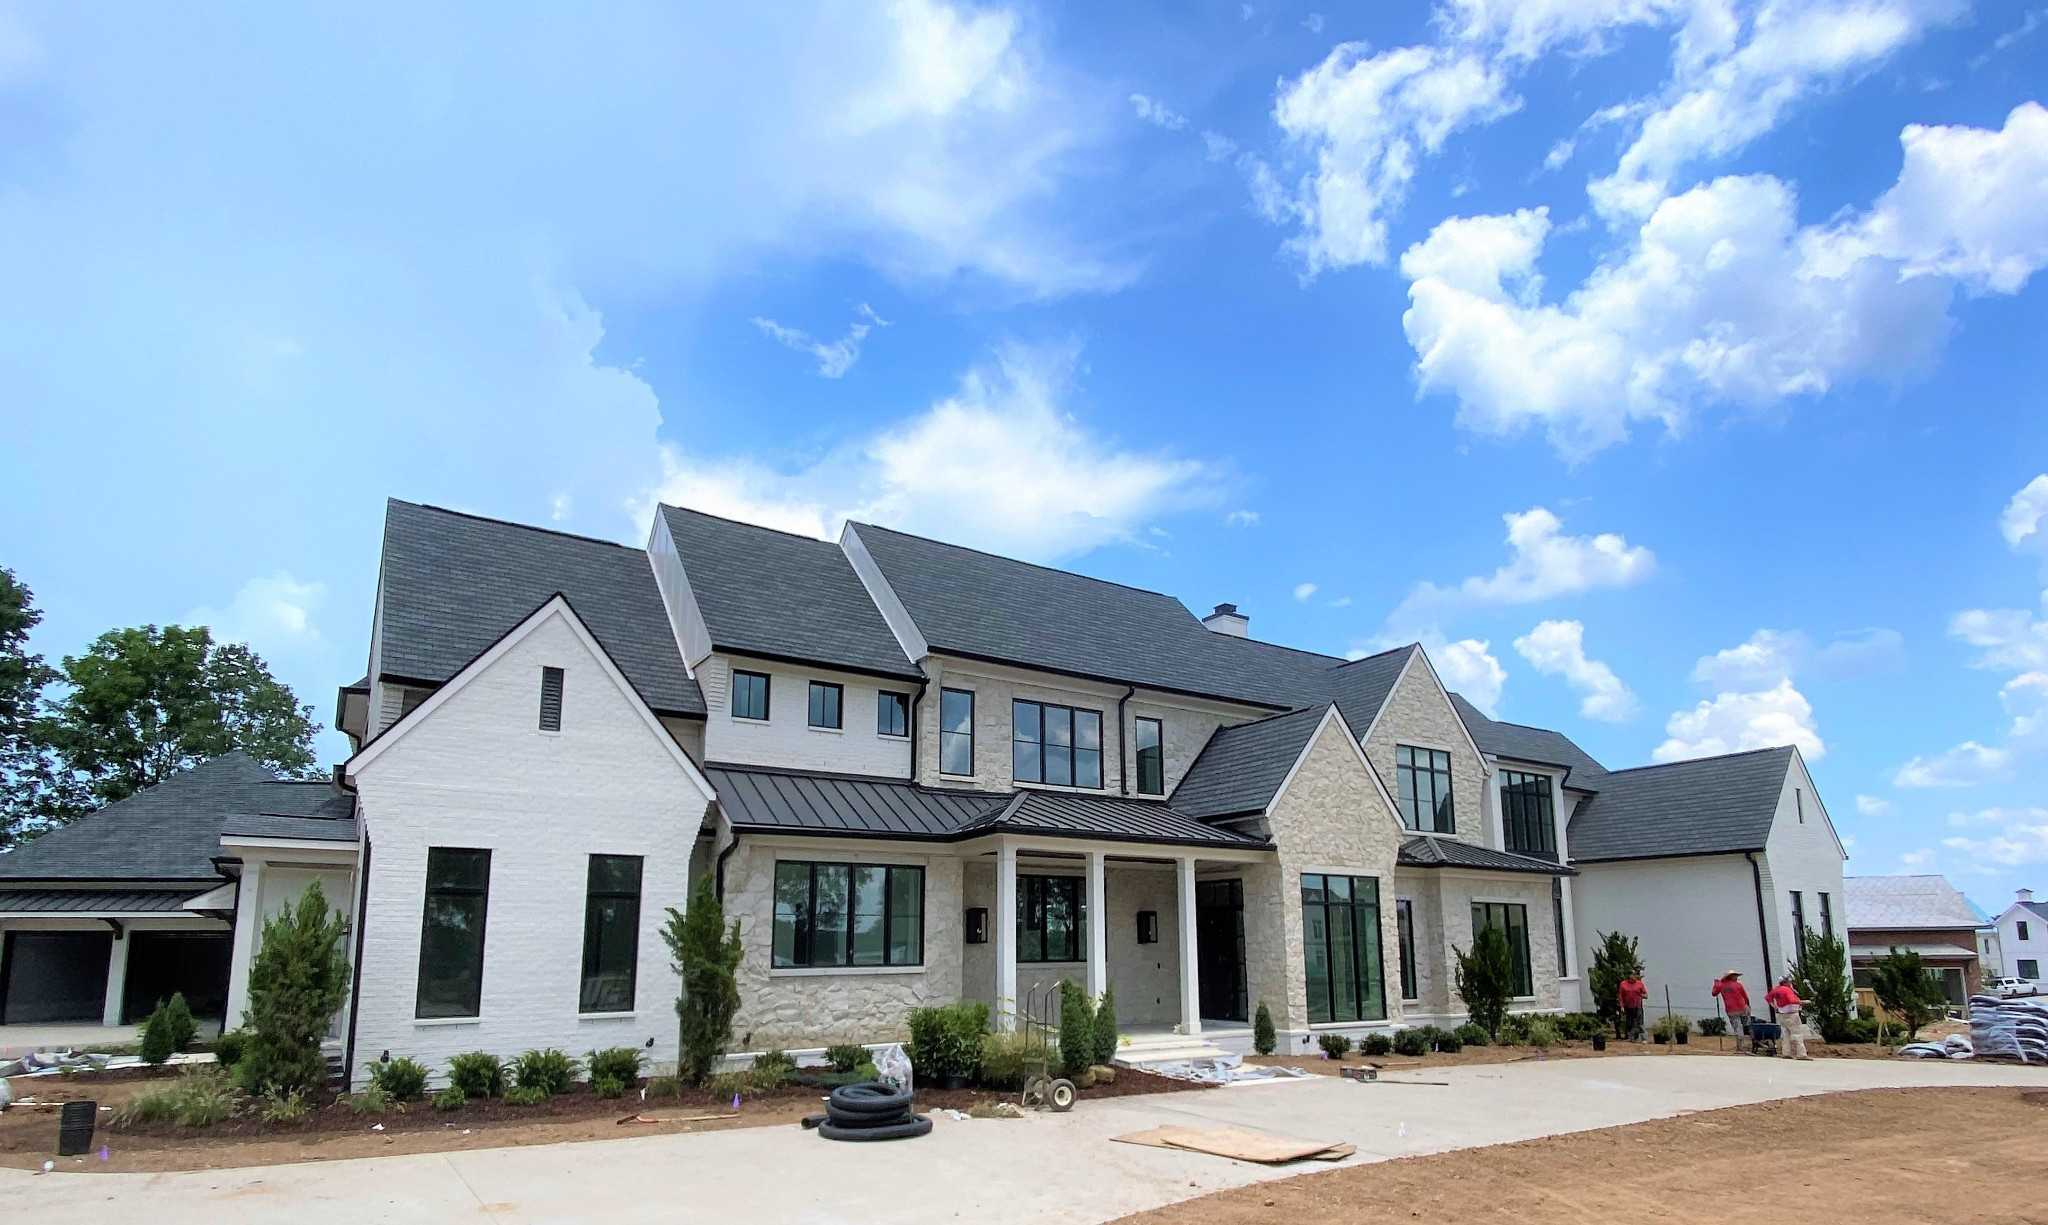 $3,999,000 - 5Br/8Ba -  for Sale in Oman, Brentwood